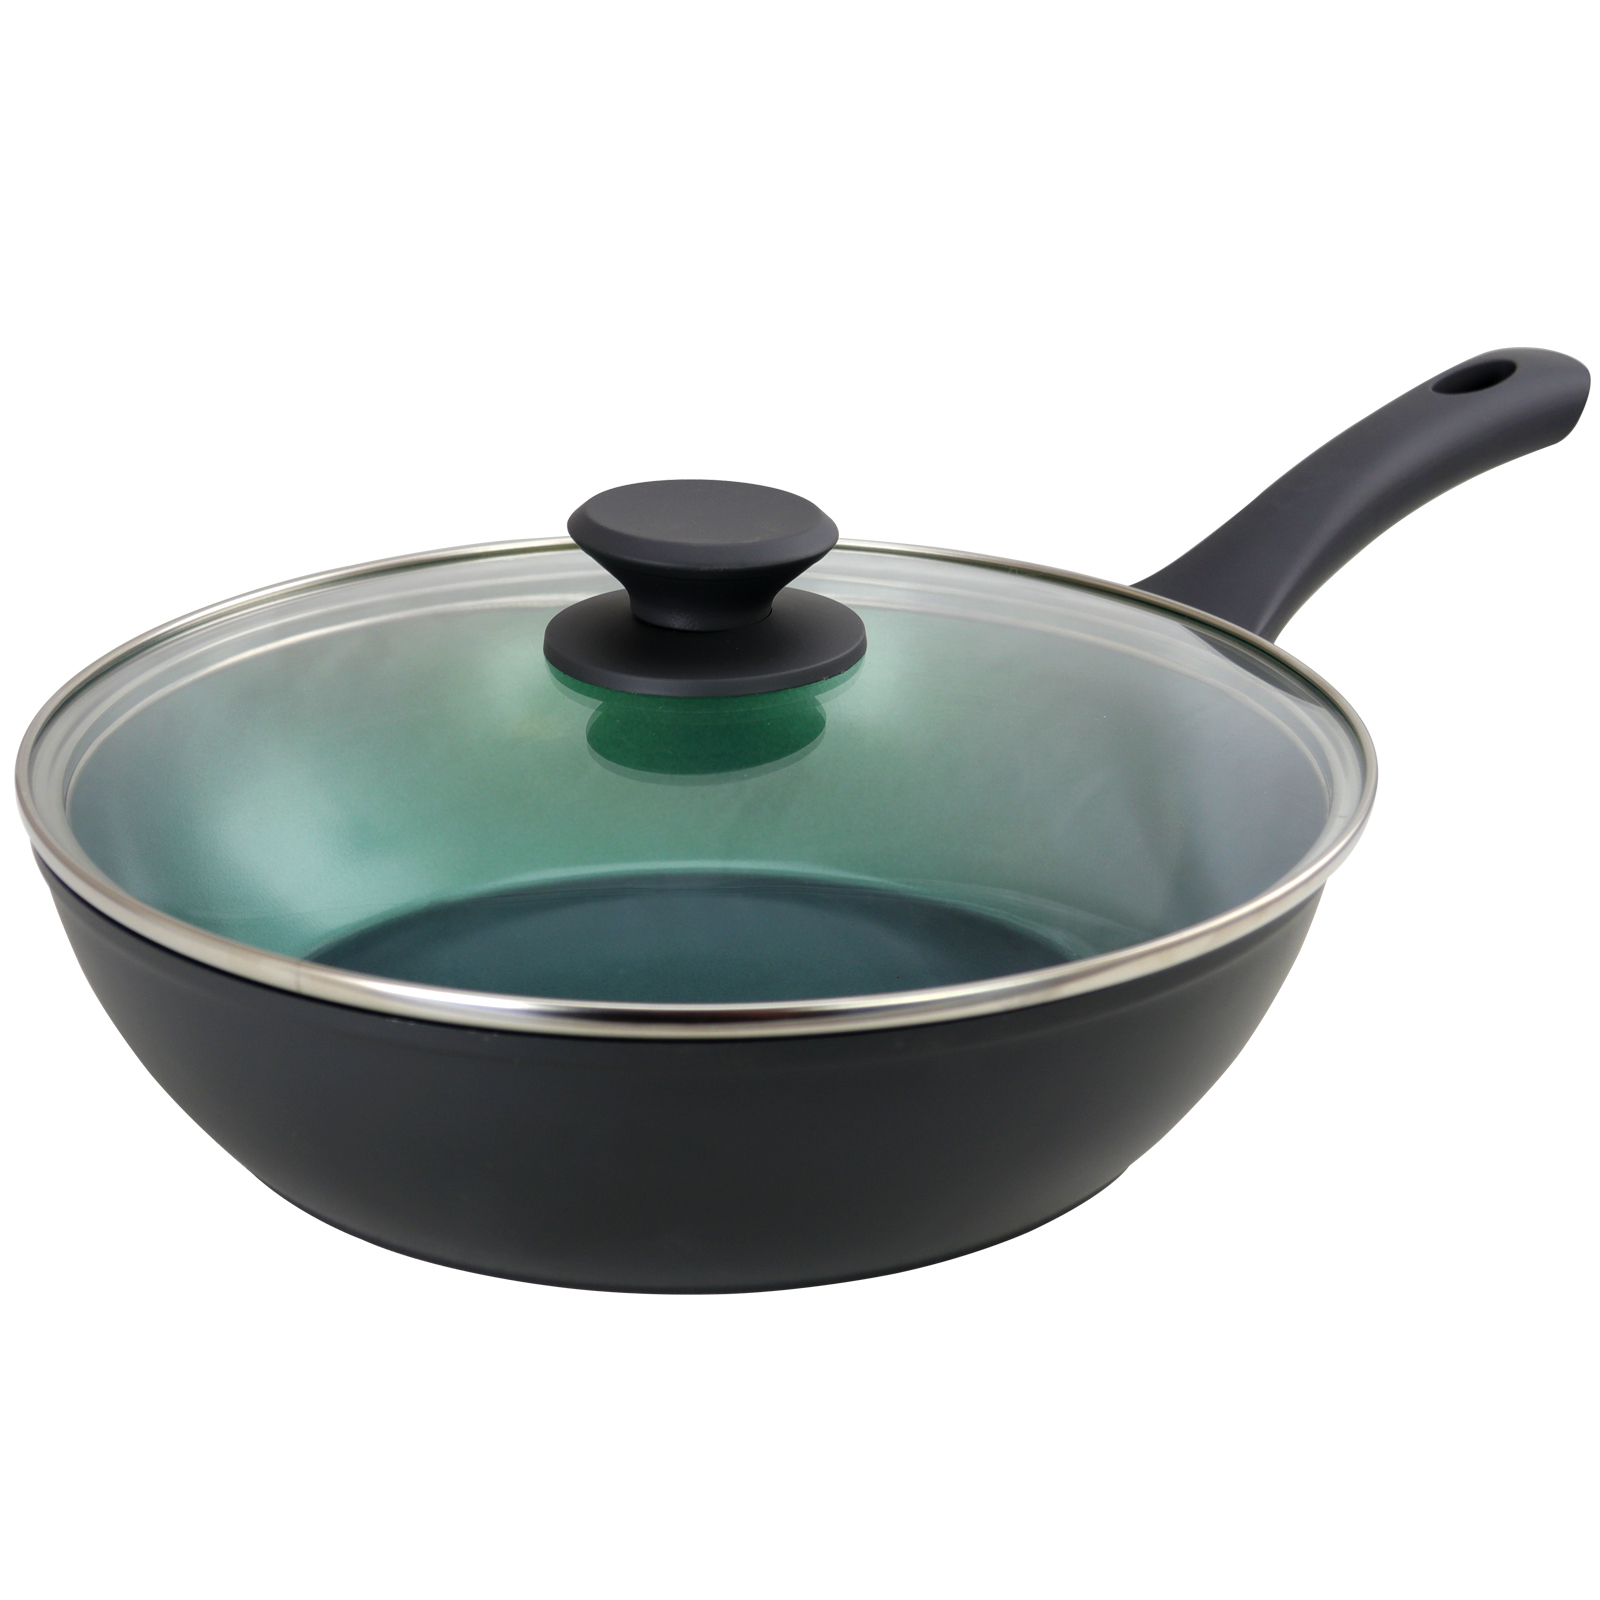 Gibson Home 3.5 Quart Green Ceramic Non-Stick Saute Pan with Lid in Matte Charcoal Grey